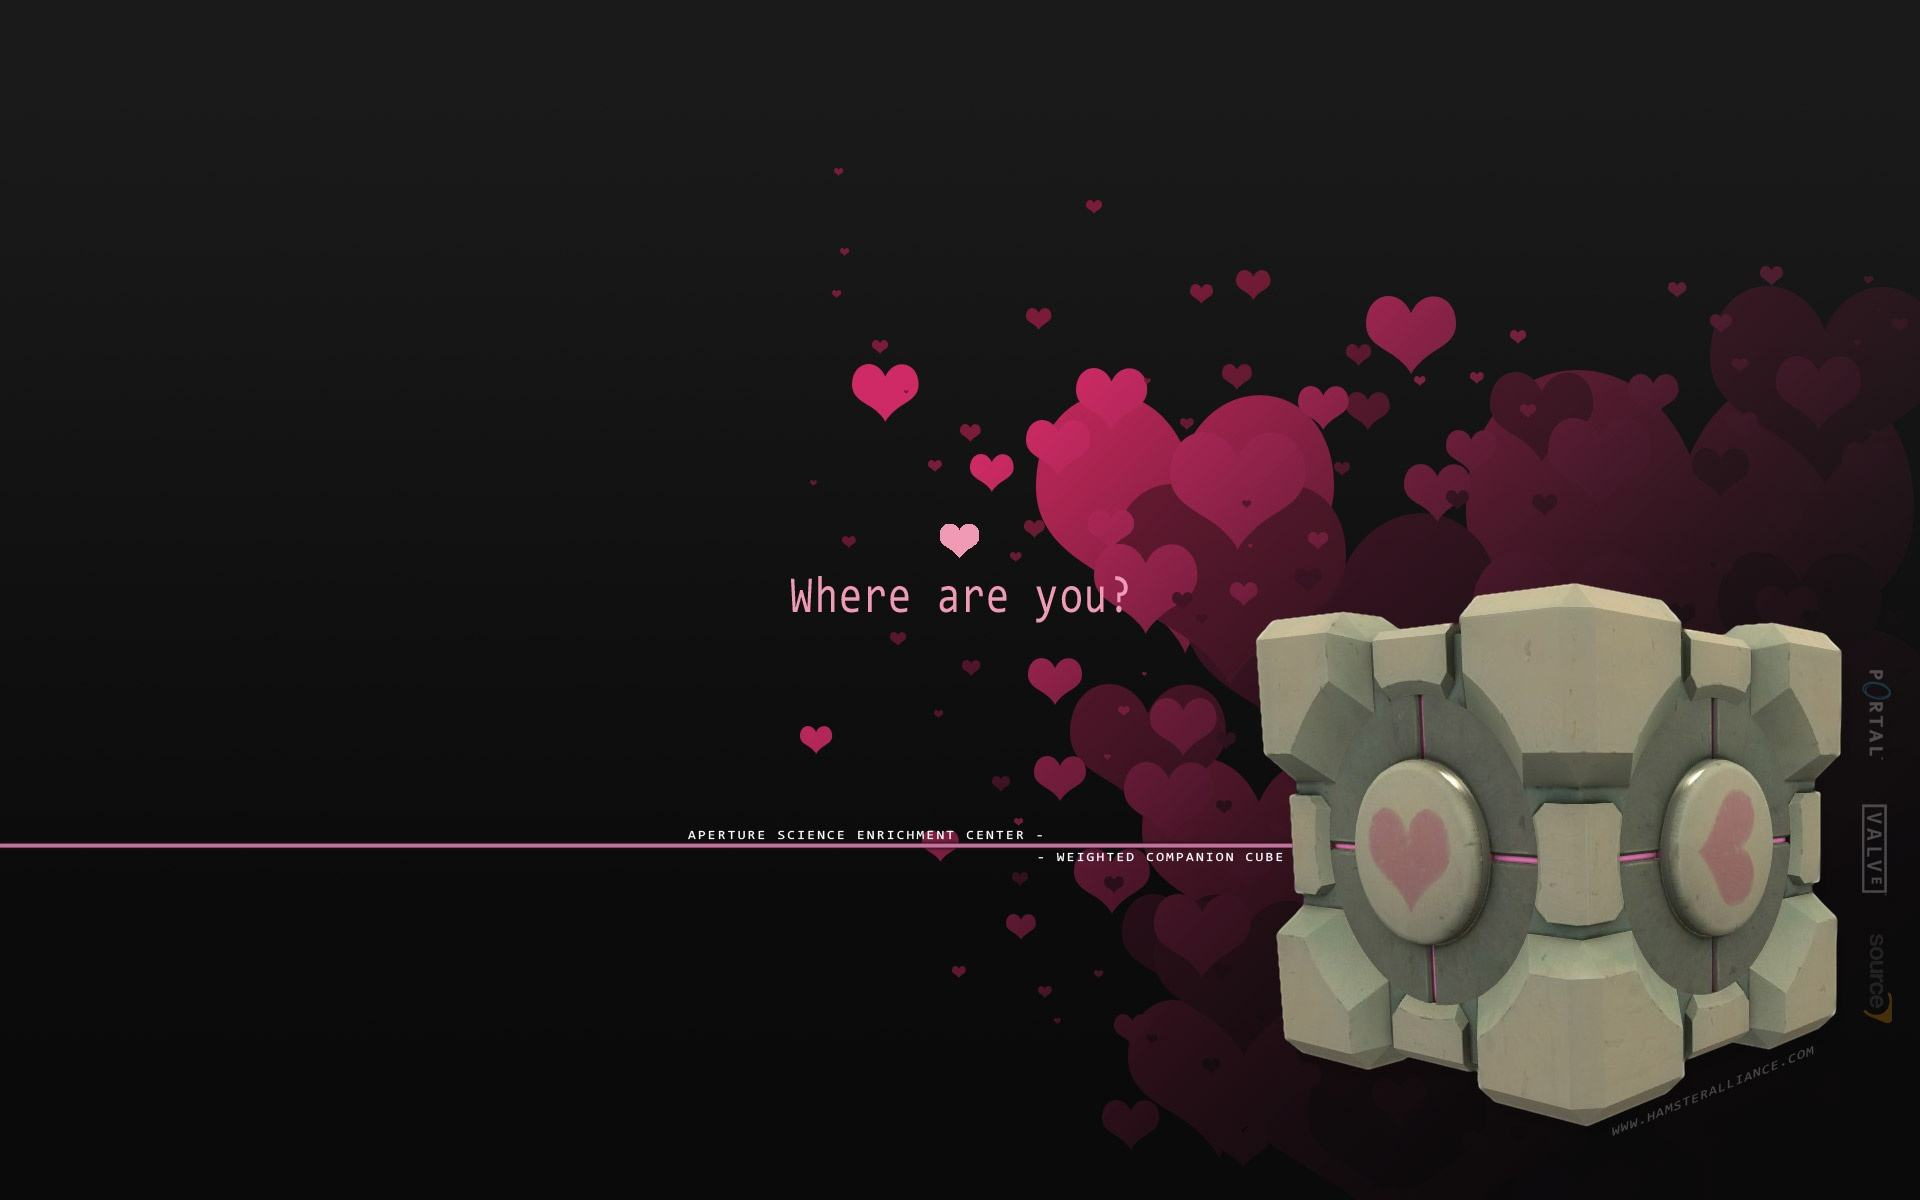 Обои Where are you 1920x1200